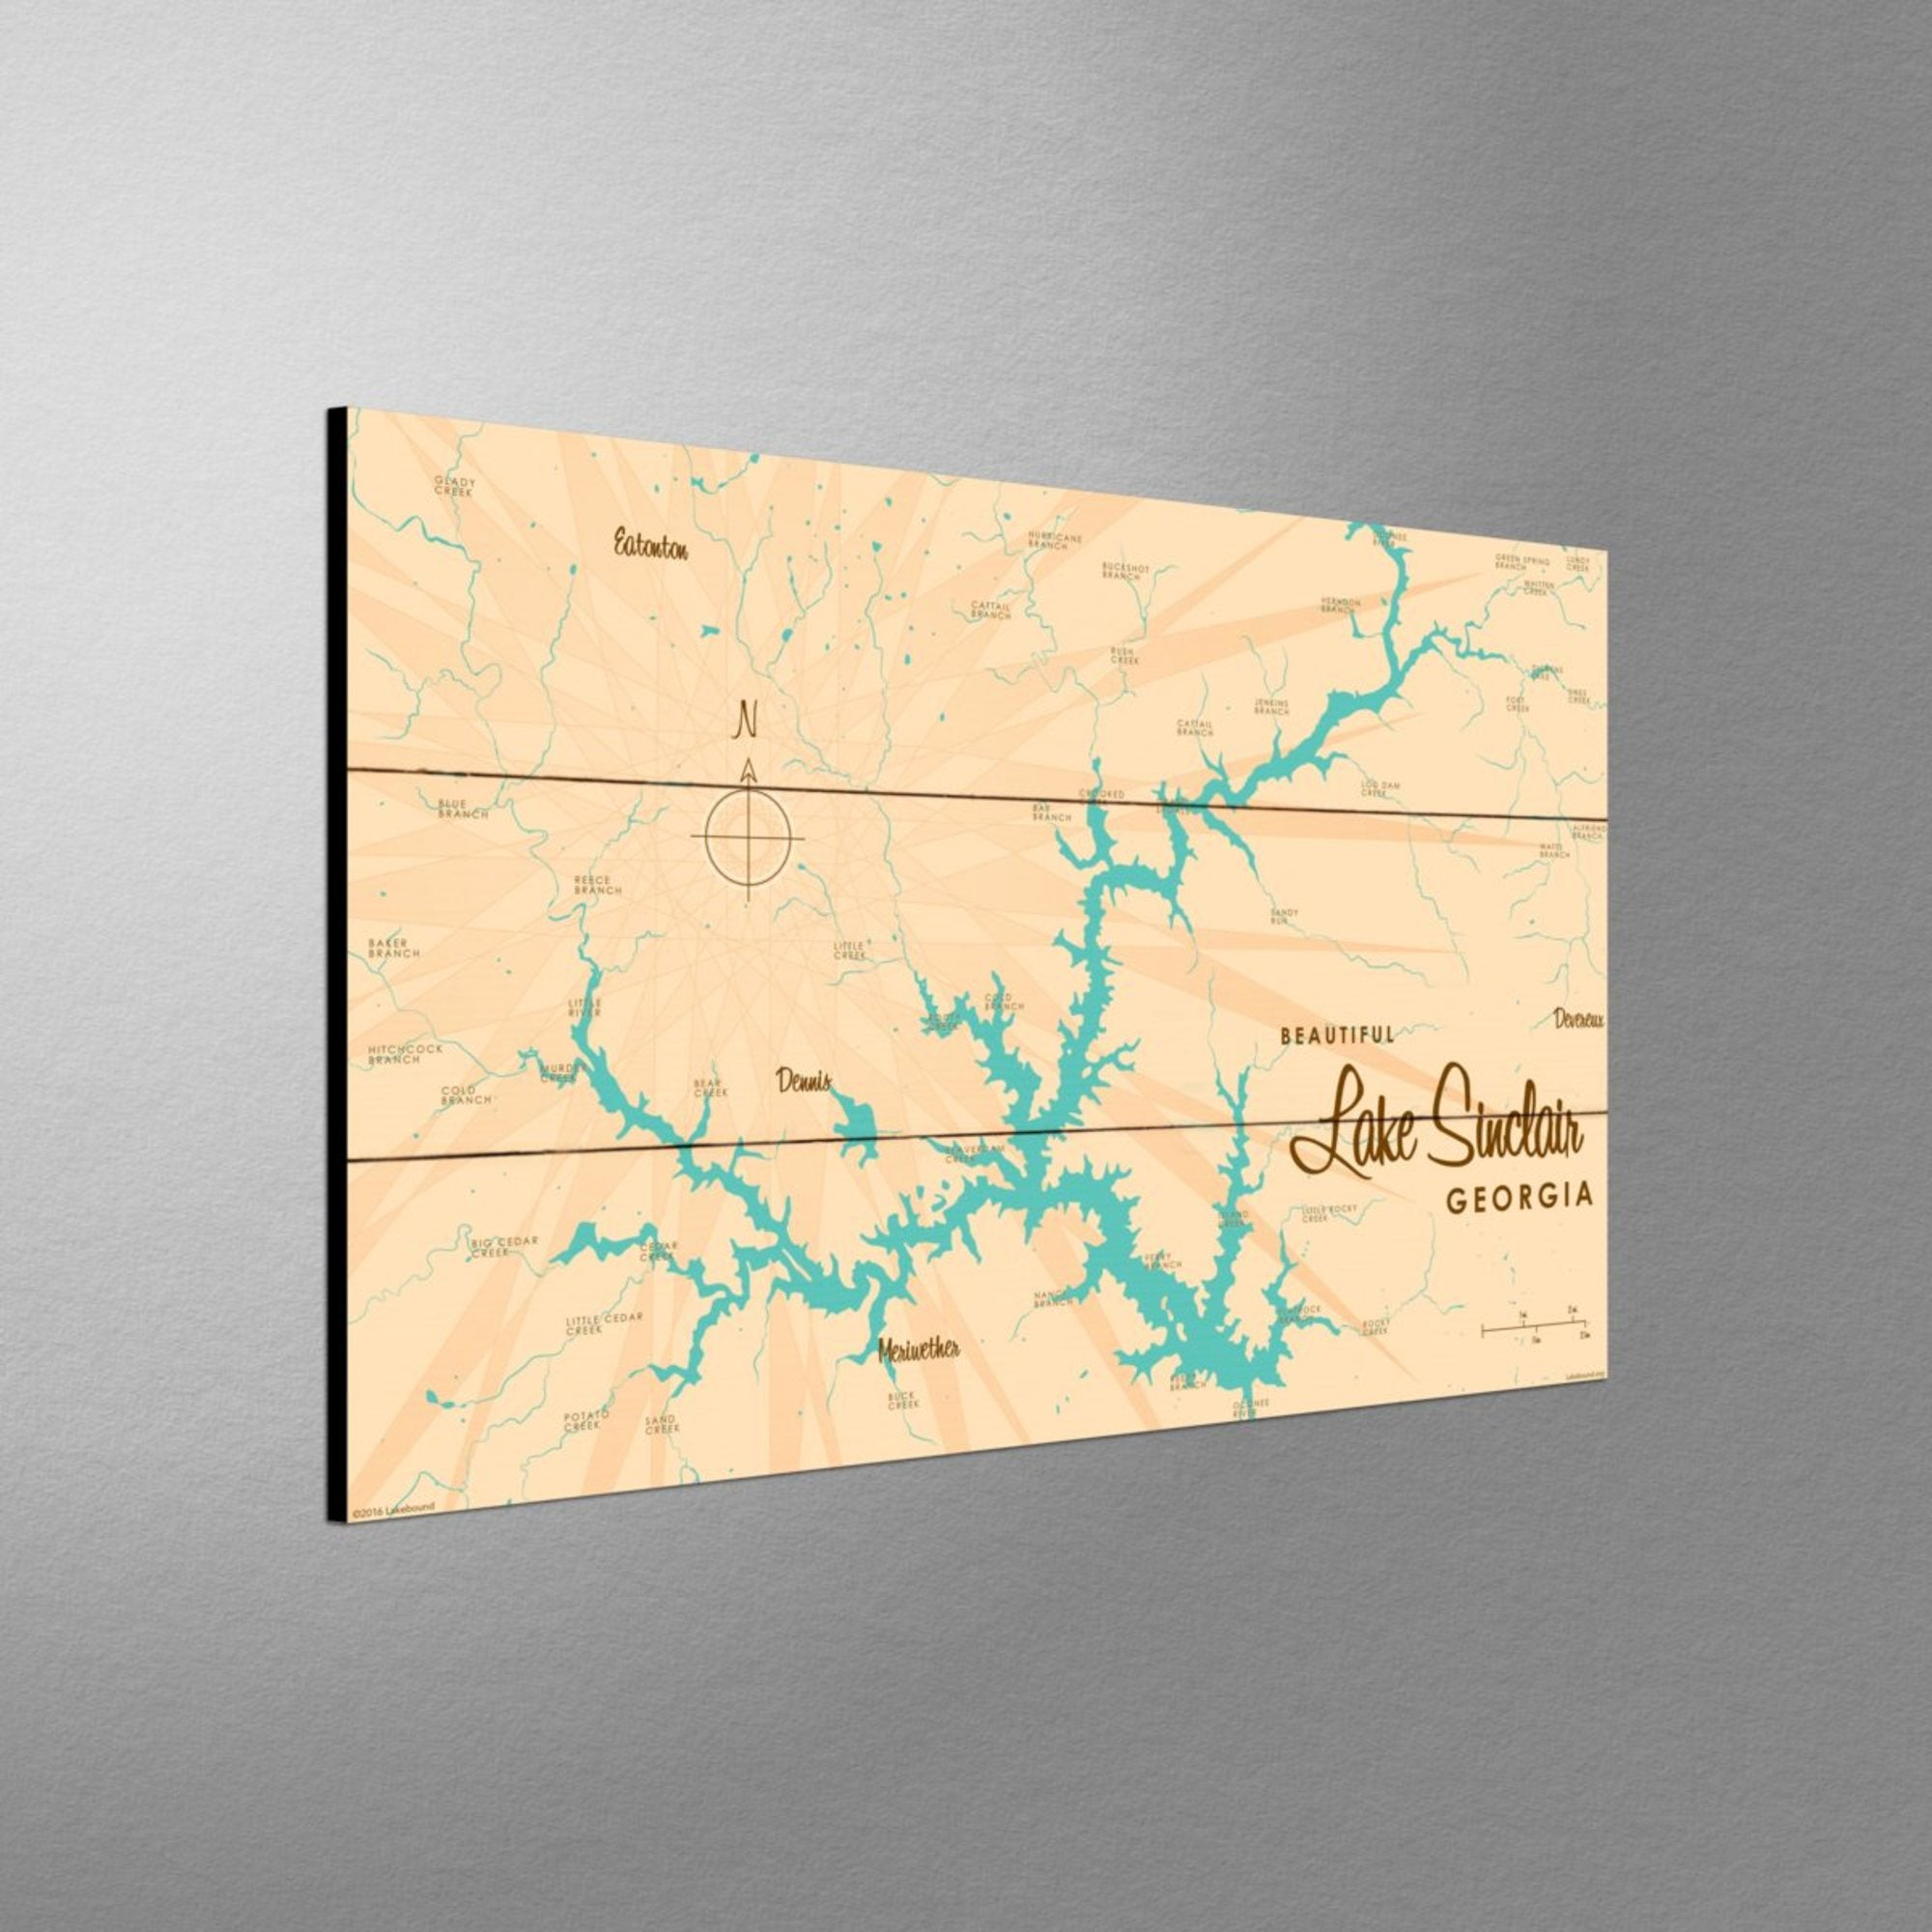 Lake Sinclair Georgia, Wood Sign Map Art